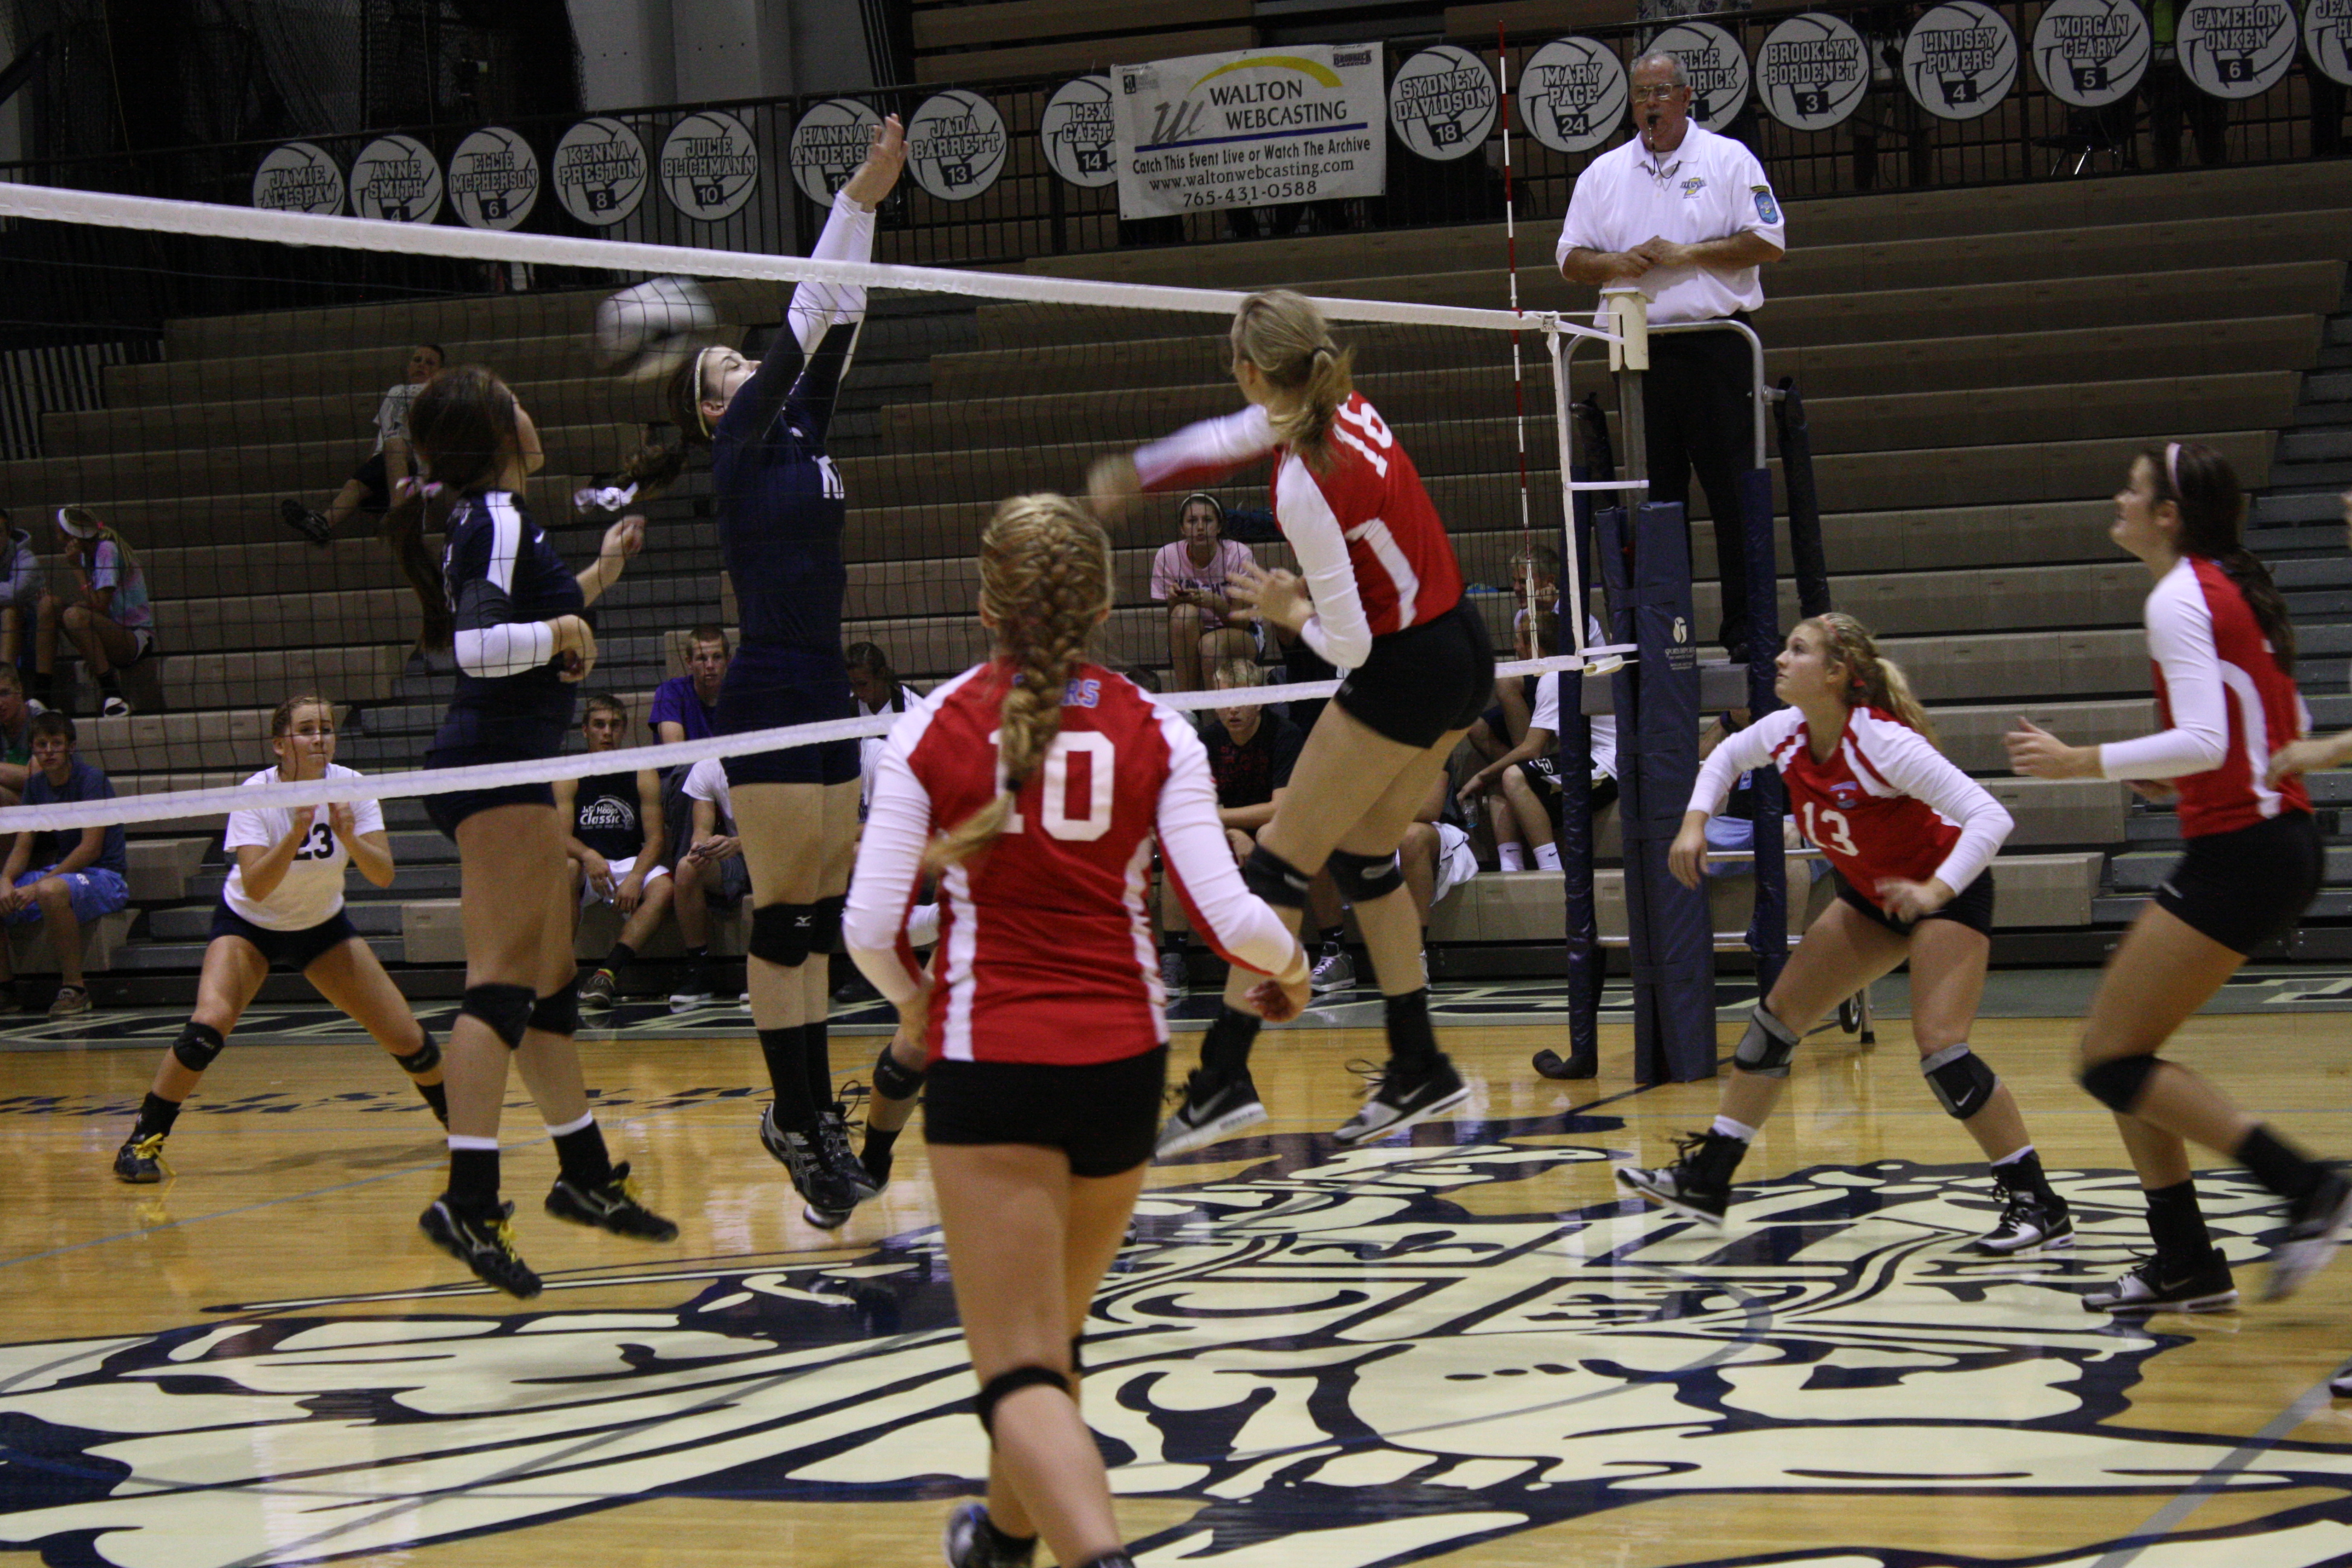 Western boone team home western boone sports girls varsity volleyball oct 3 volleyball vs lafayette central catholic junglespirit Choice Image